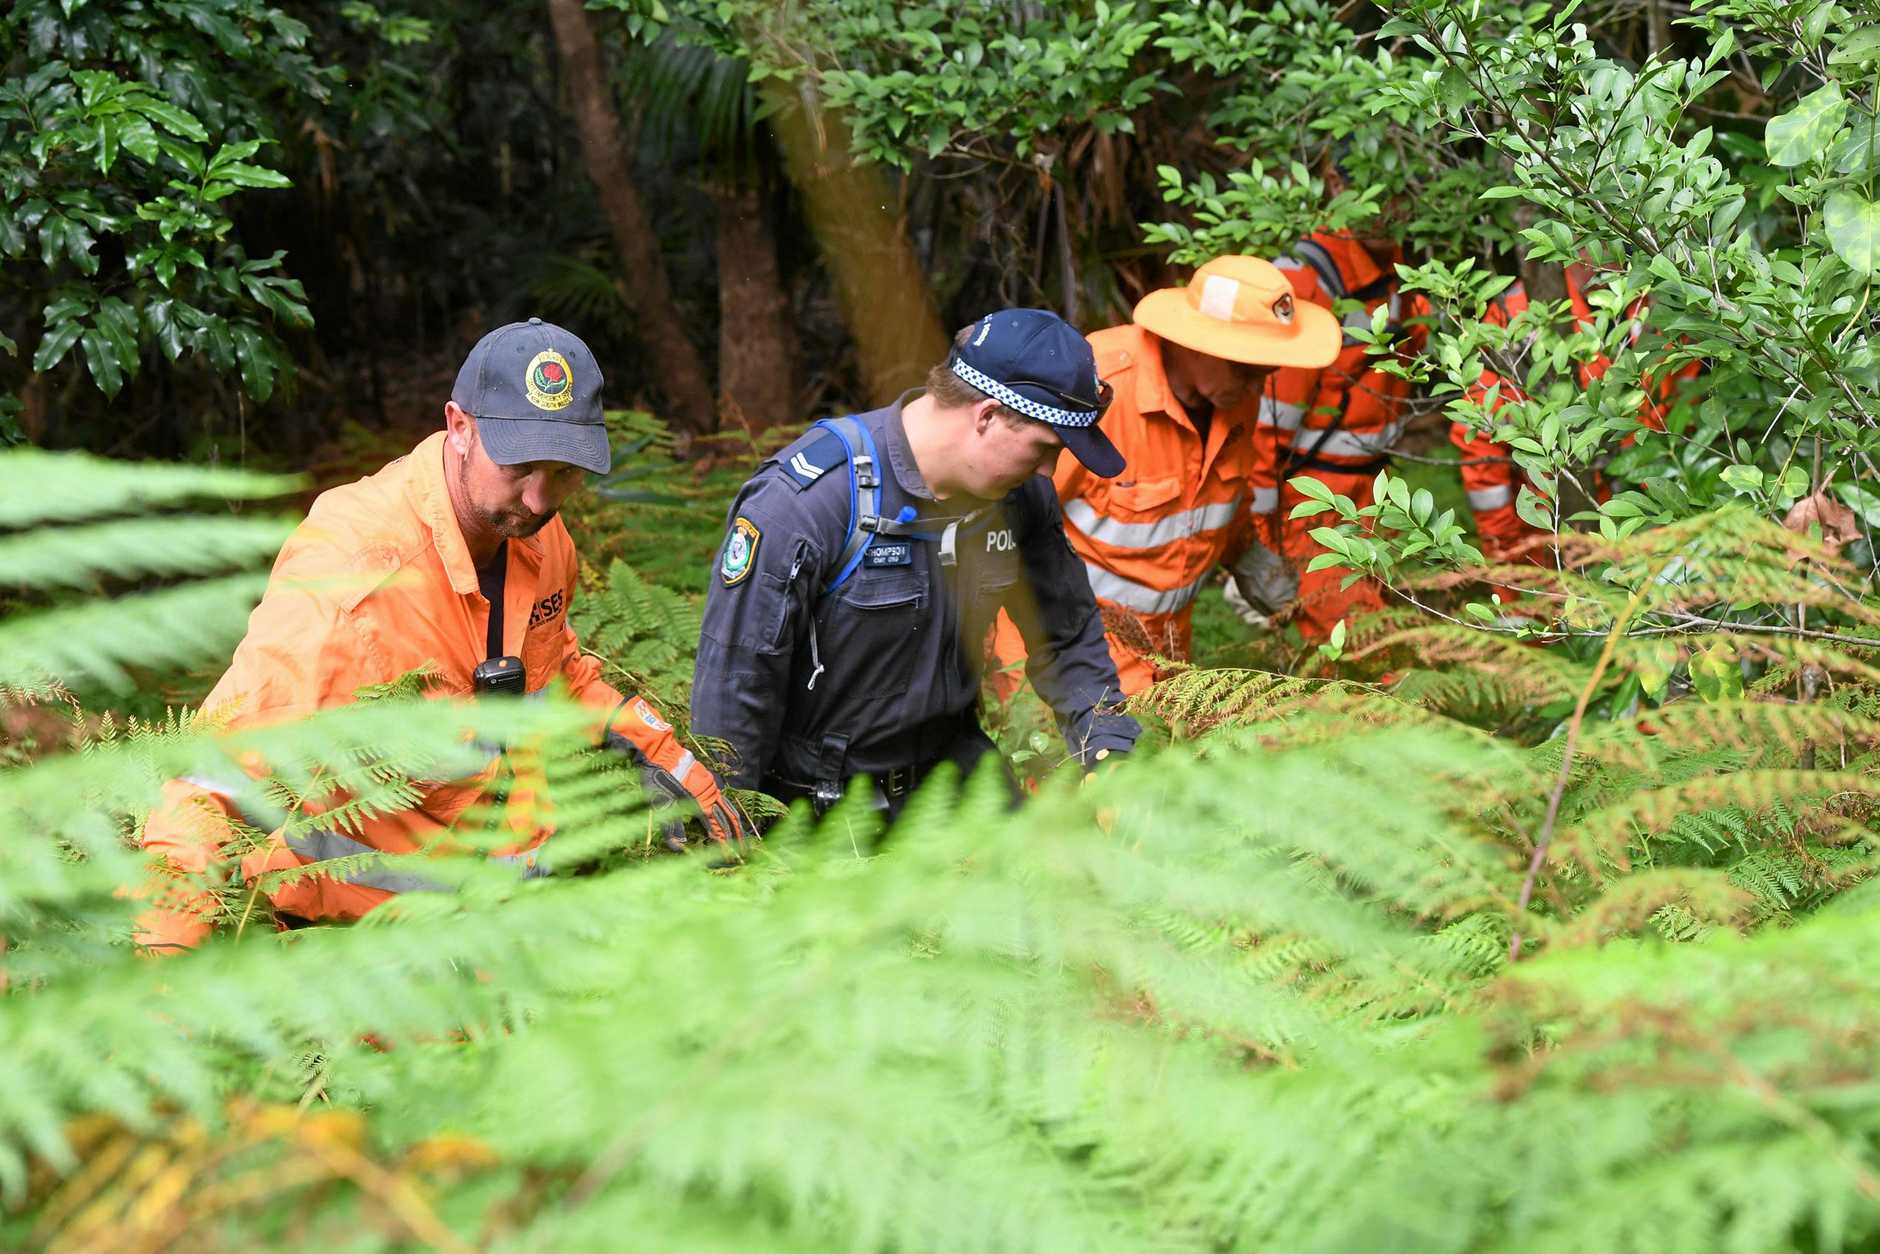 SES and police continue the search for missing Belgium backpacker Theo Hayez in thick bushland between The Pass and Wategoes.